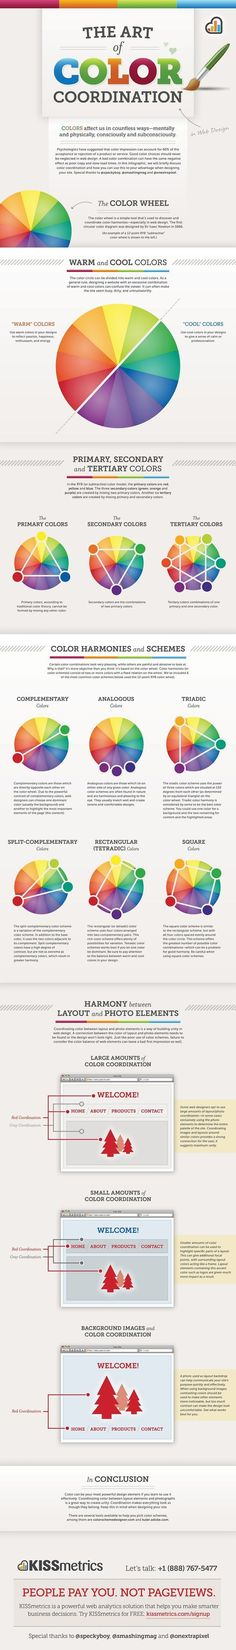 Psychology : The Art of Colour Coordination | Infographic